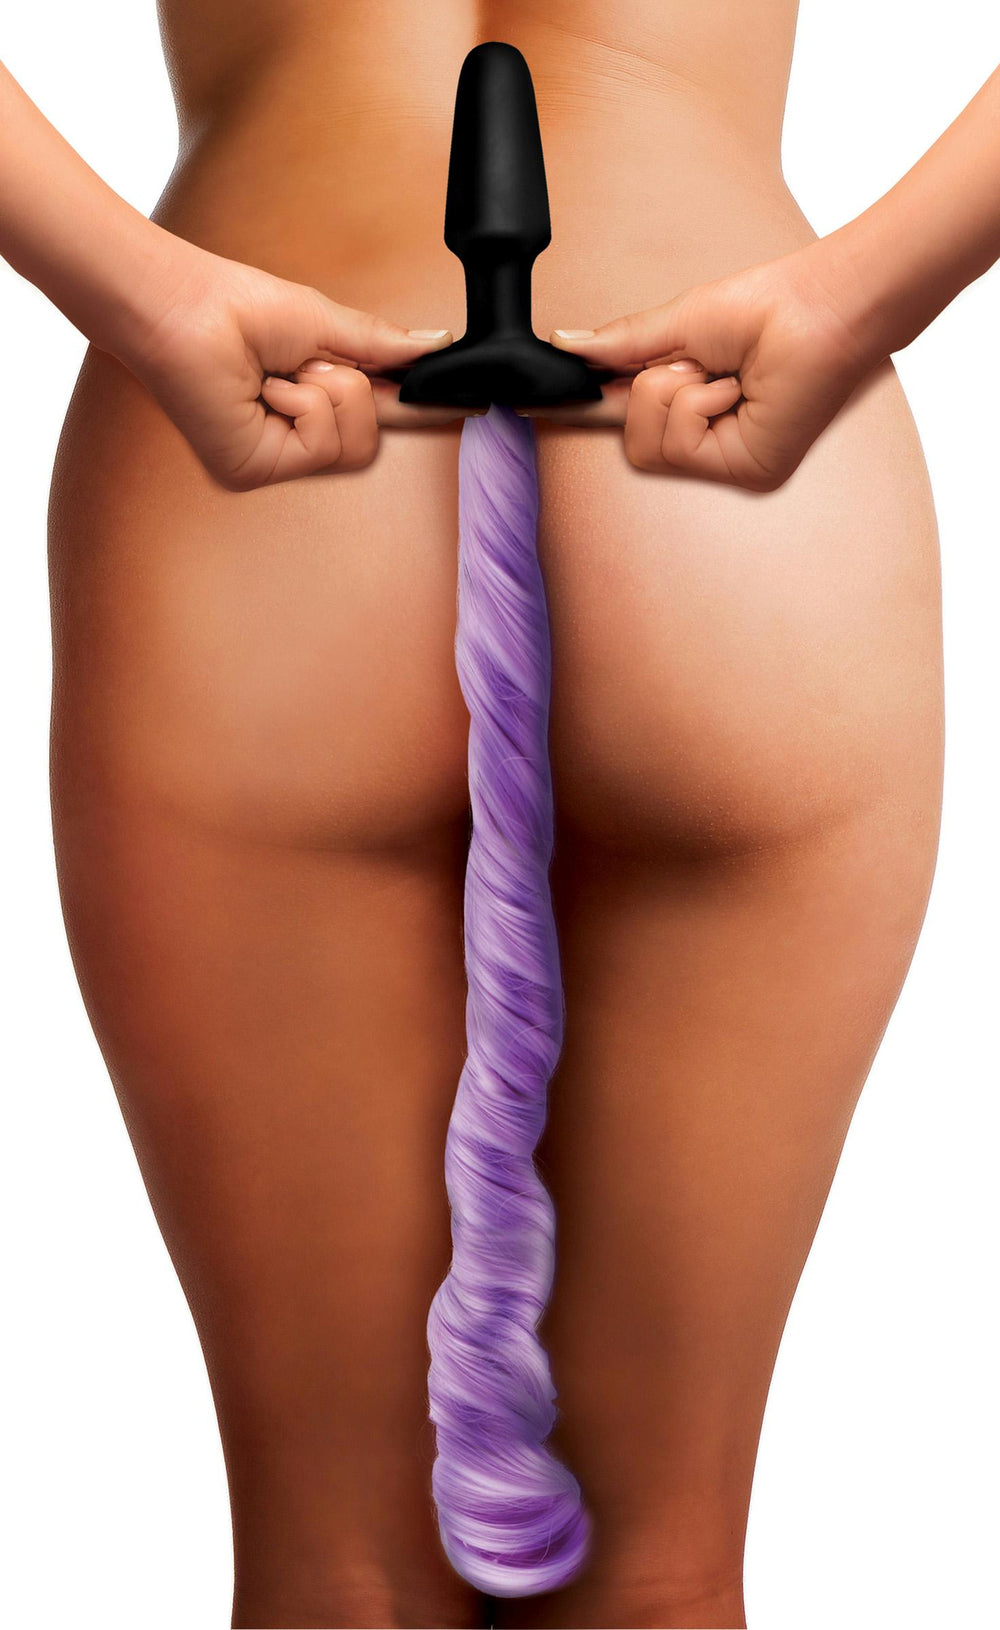 Purple Pony Tail Anal Plug - Fun and Kinky Sex Toys